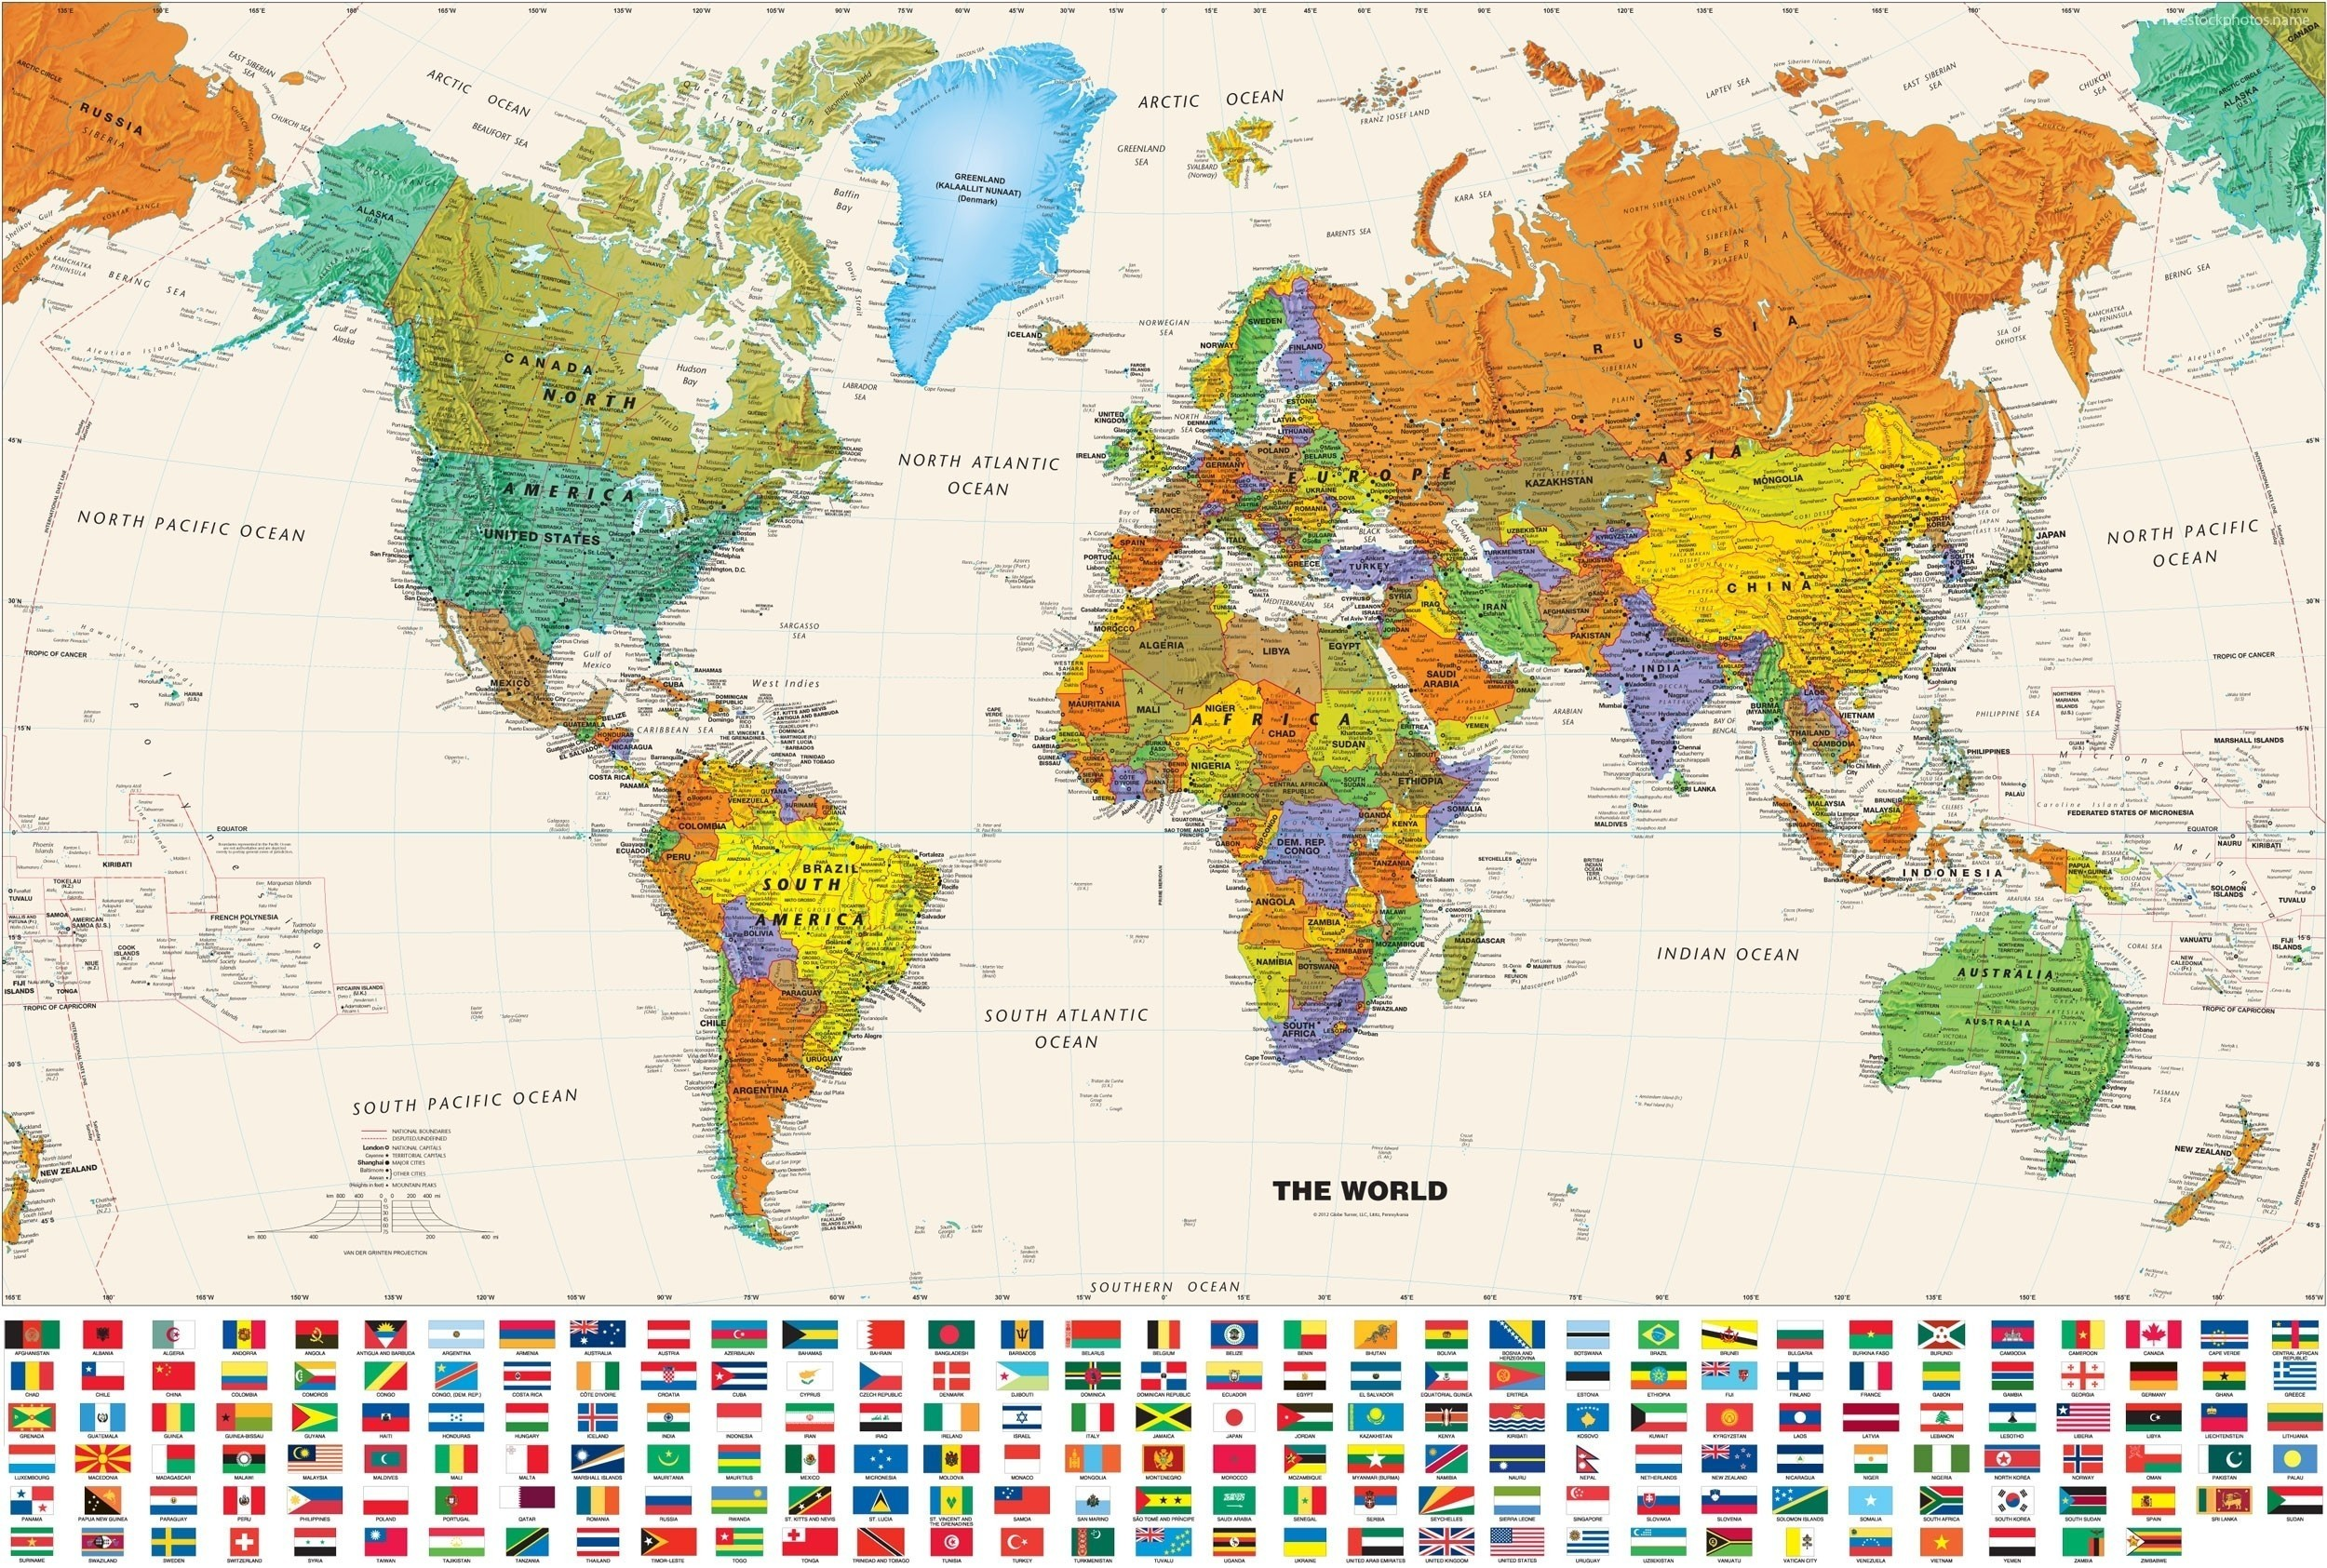 2500x1685 Title : world map images hd download best world map time zone wallpaper.  Dimension :